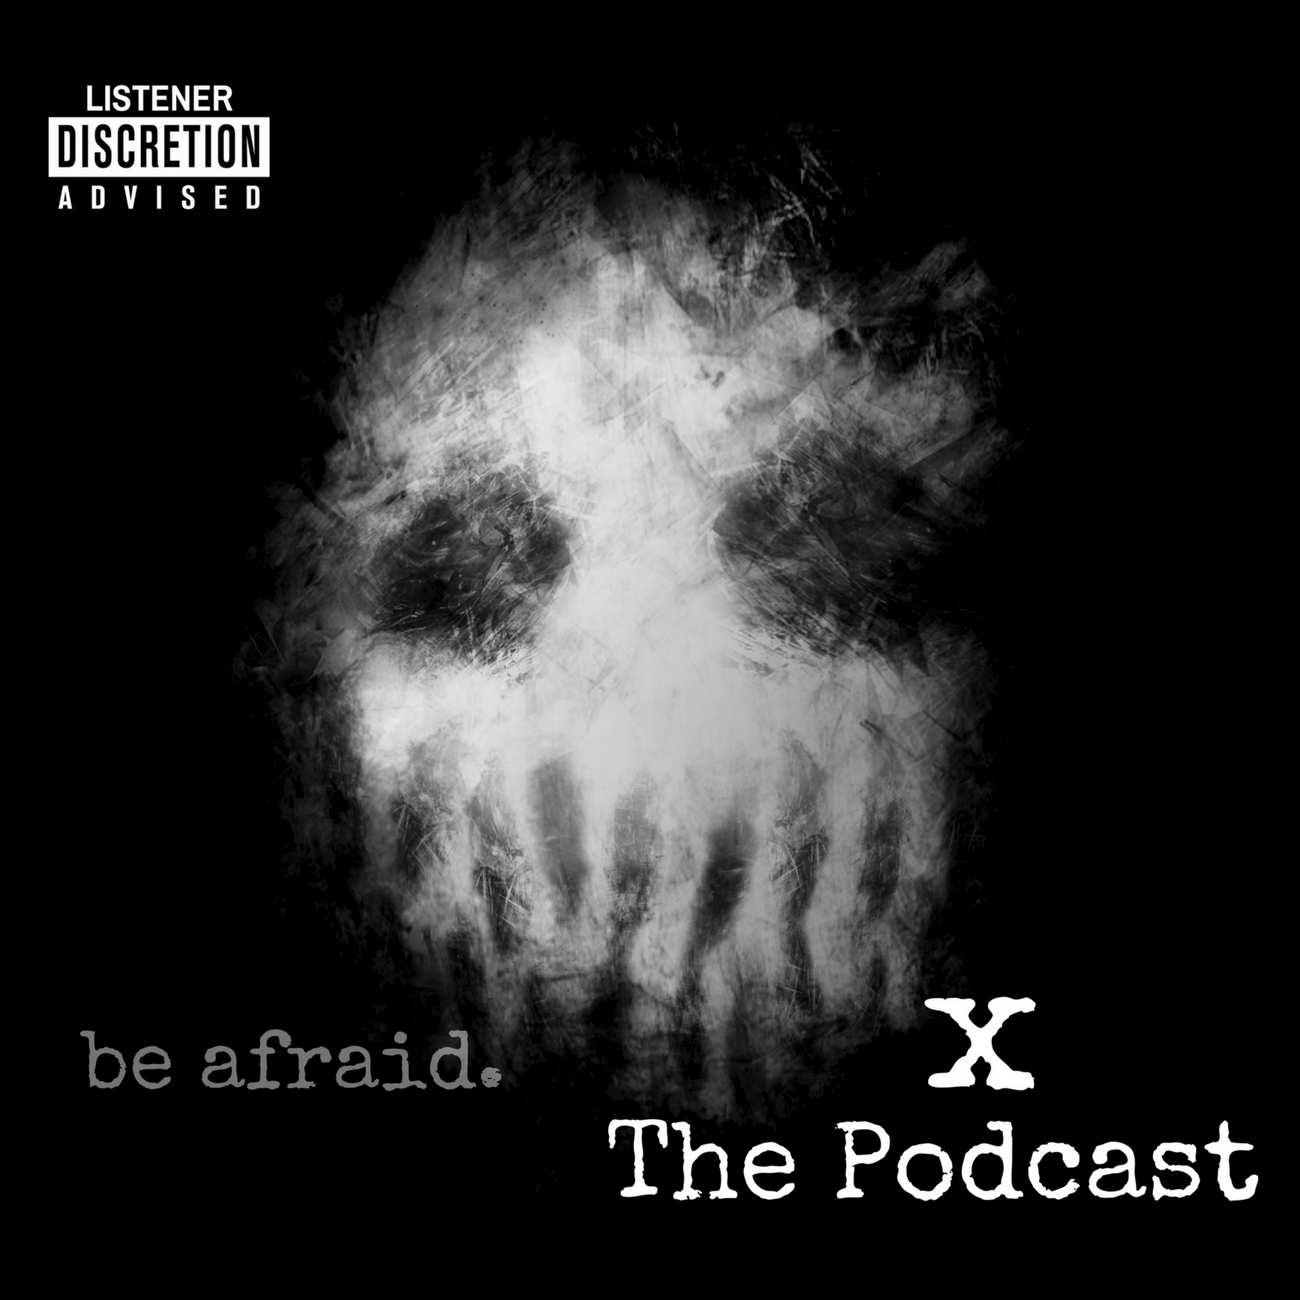 The X Podcast - Ghost Stories